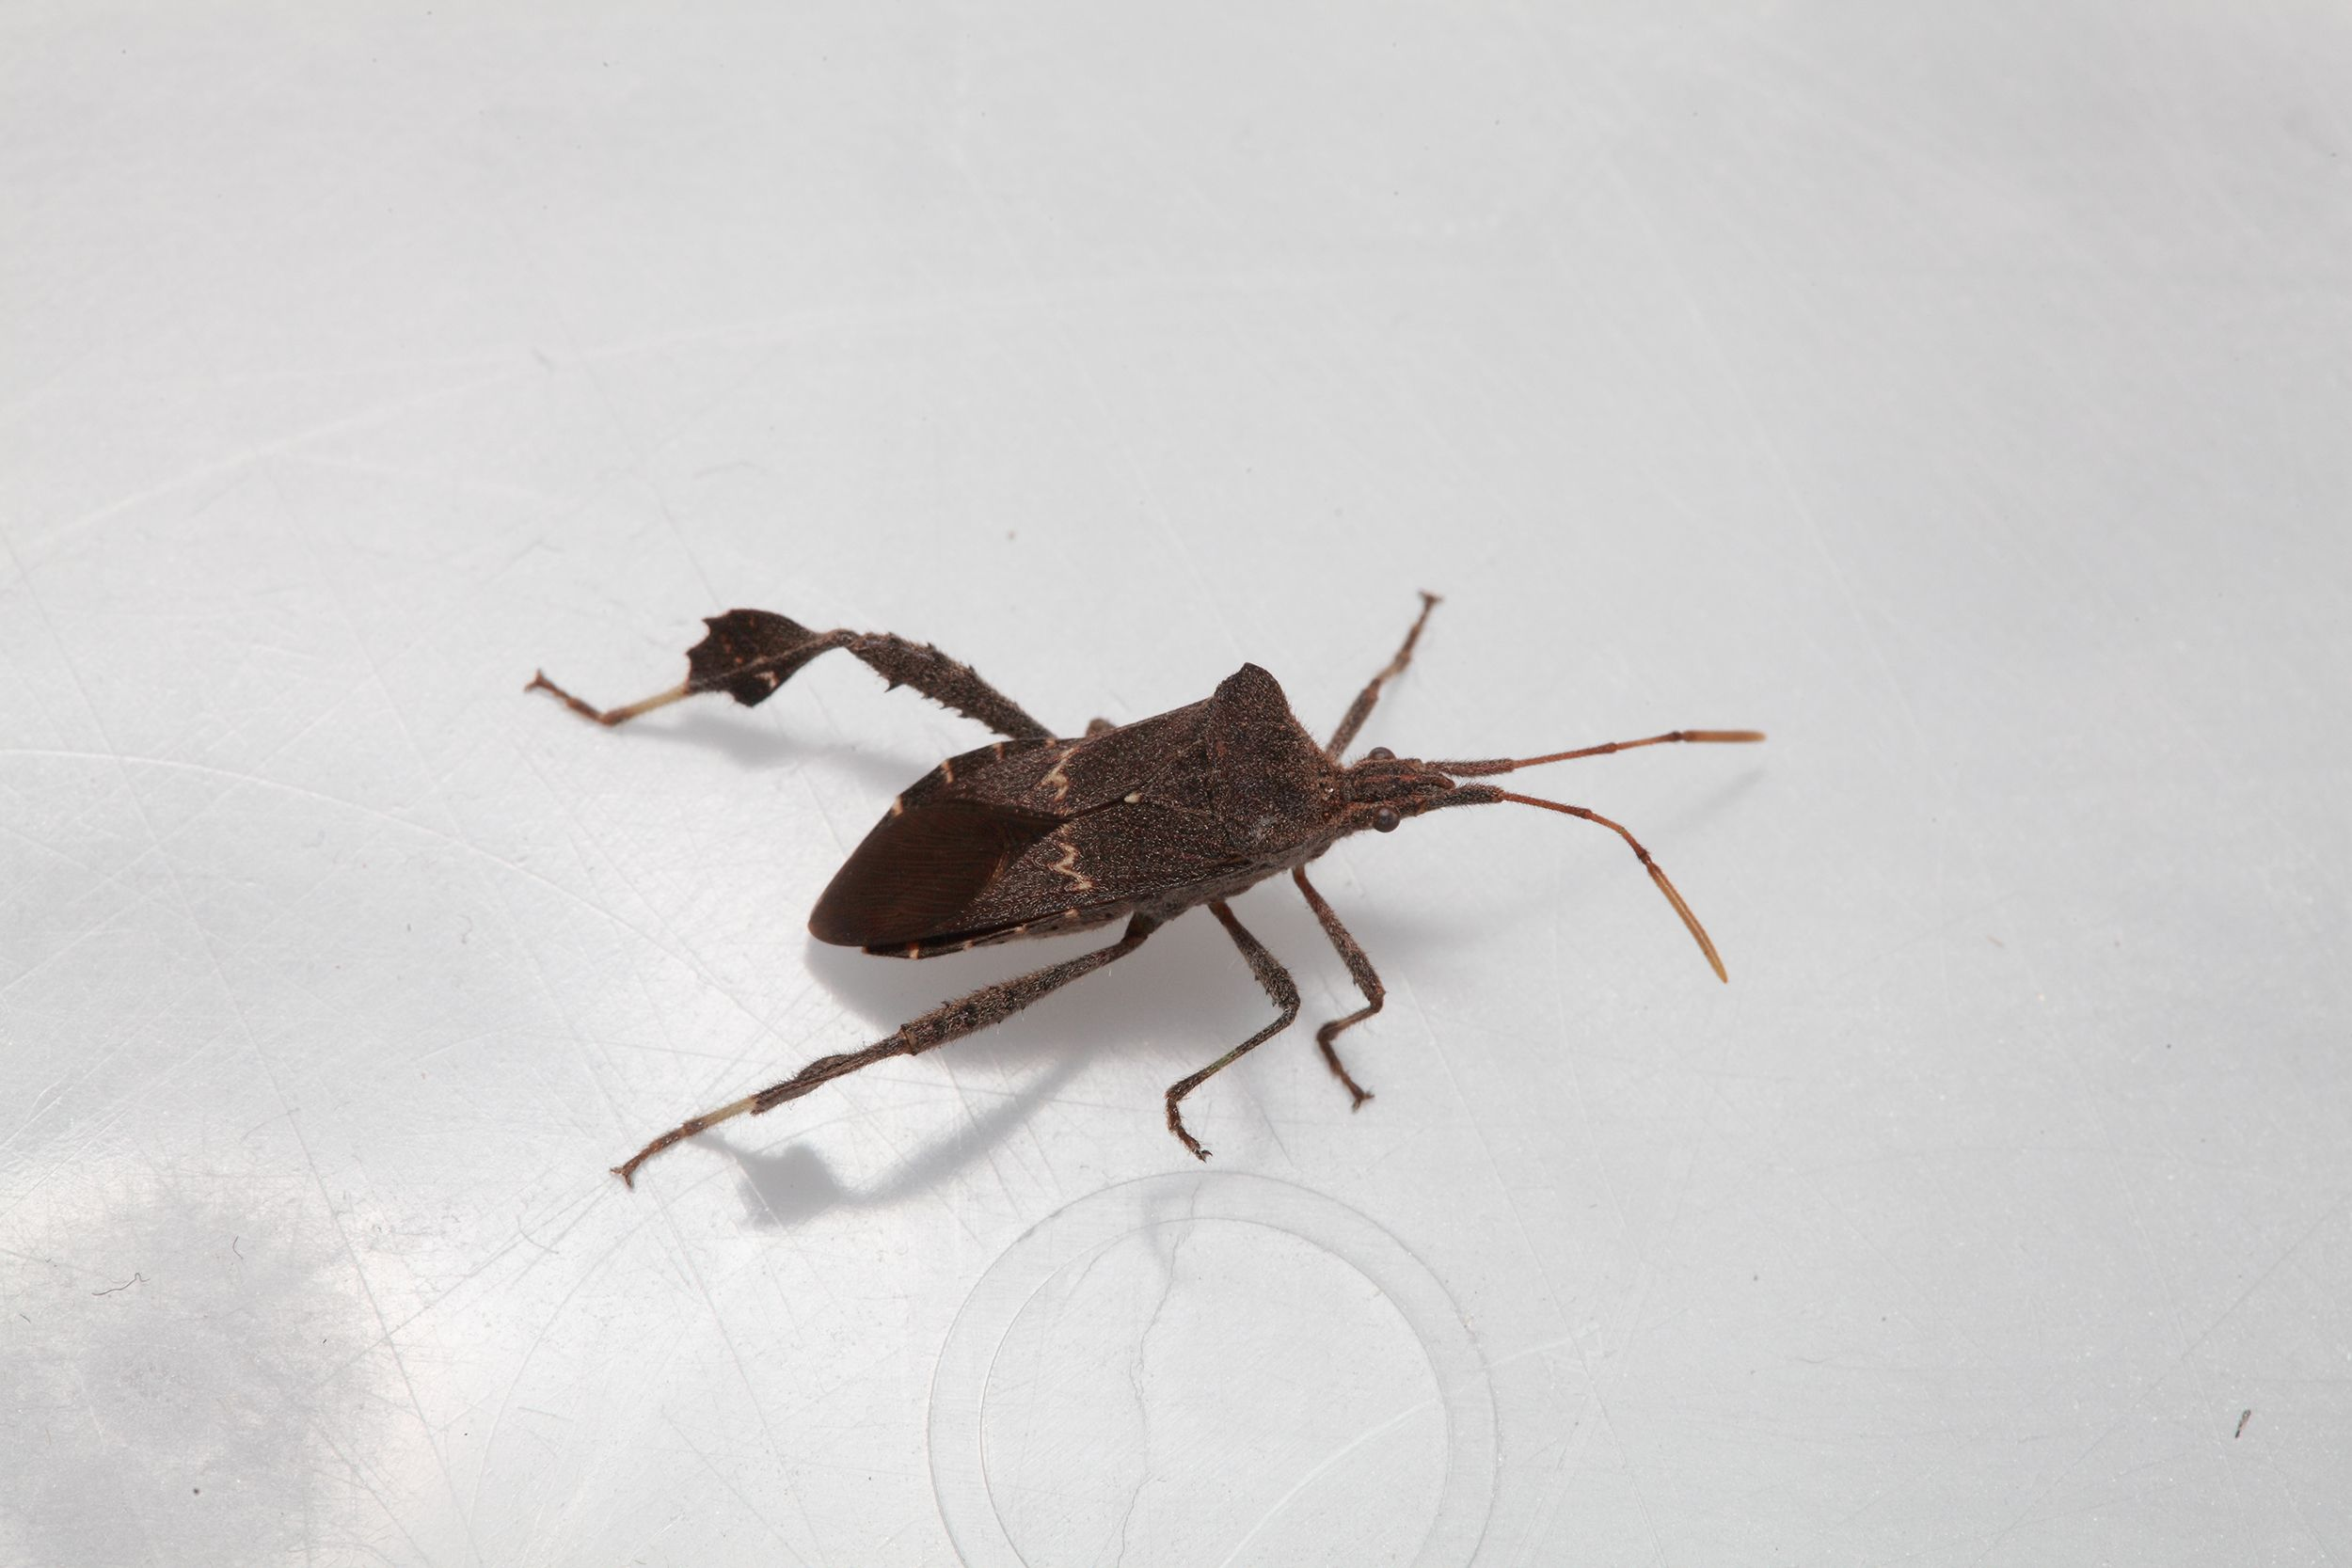 This Is Not A Kissing Bug But Look To See Others Kissing Bugs